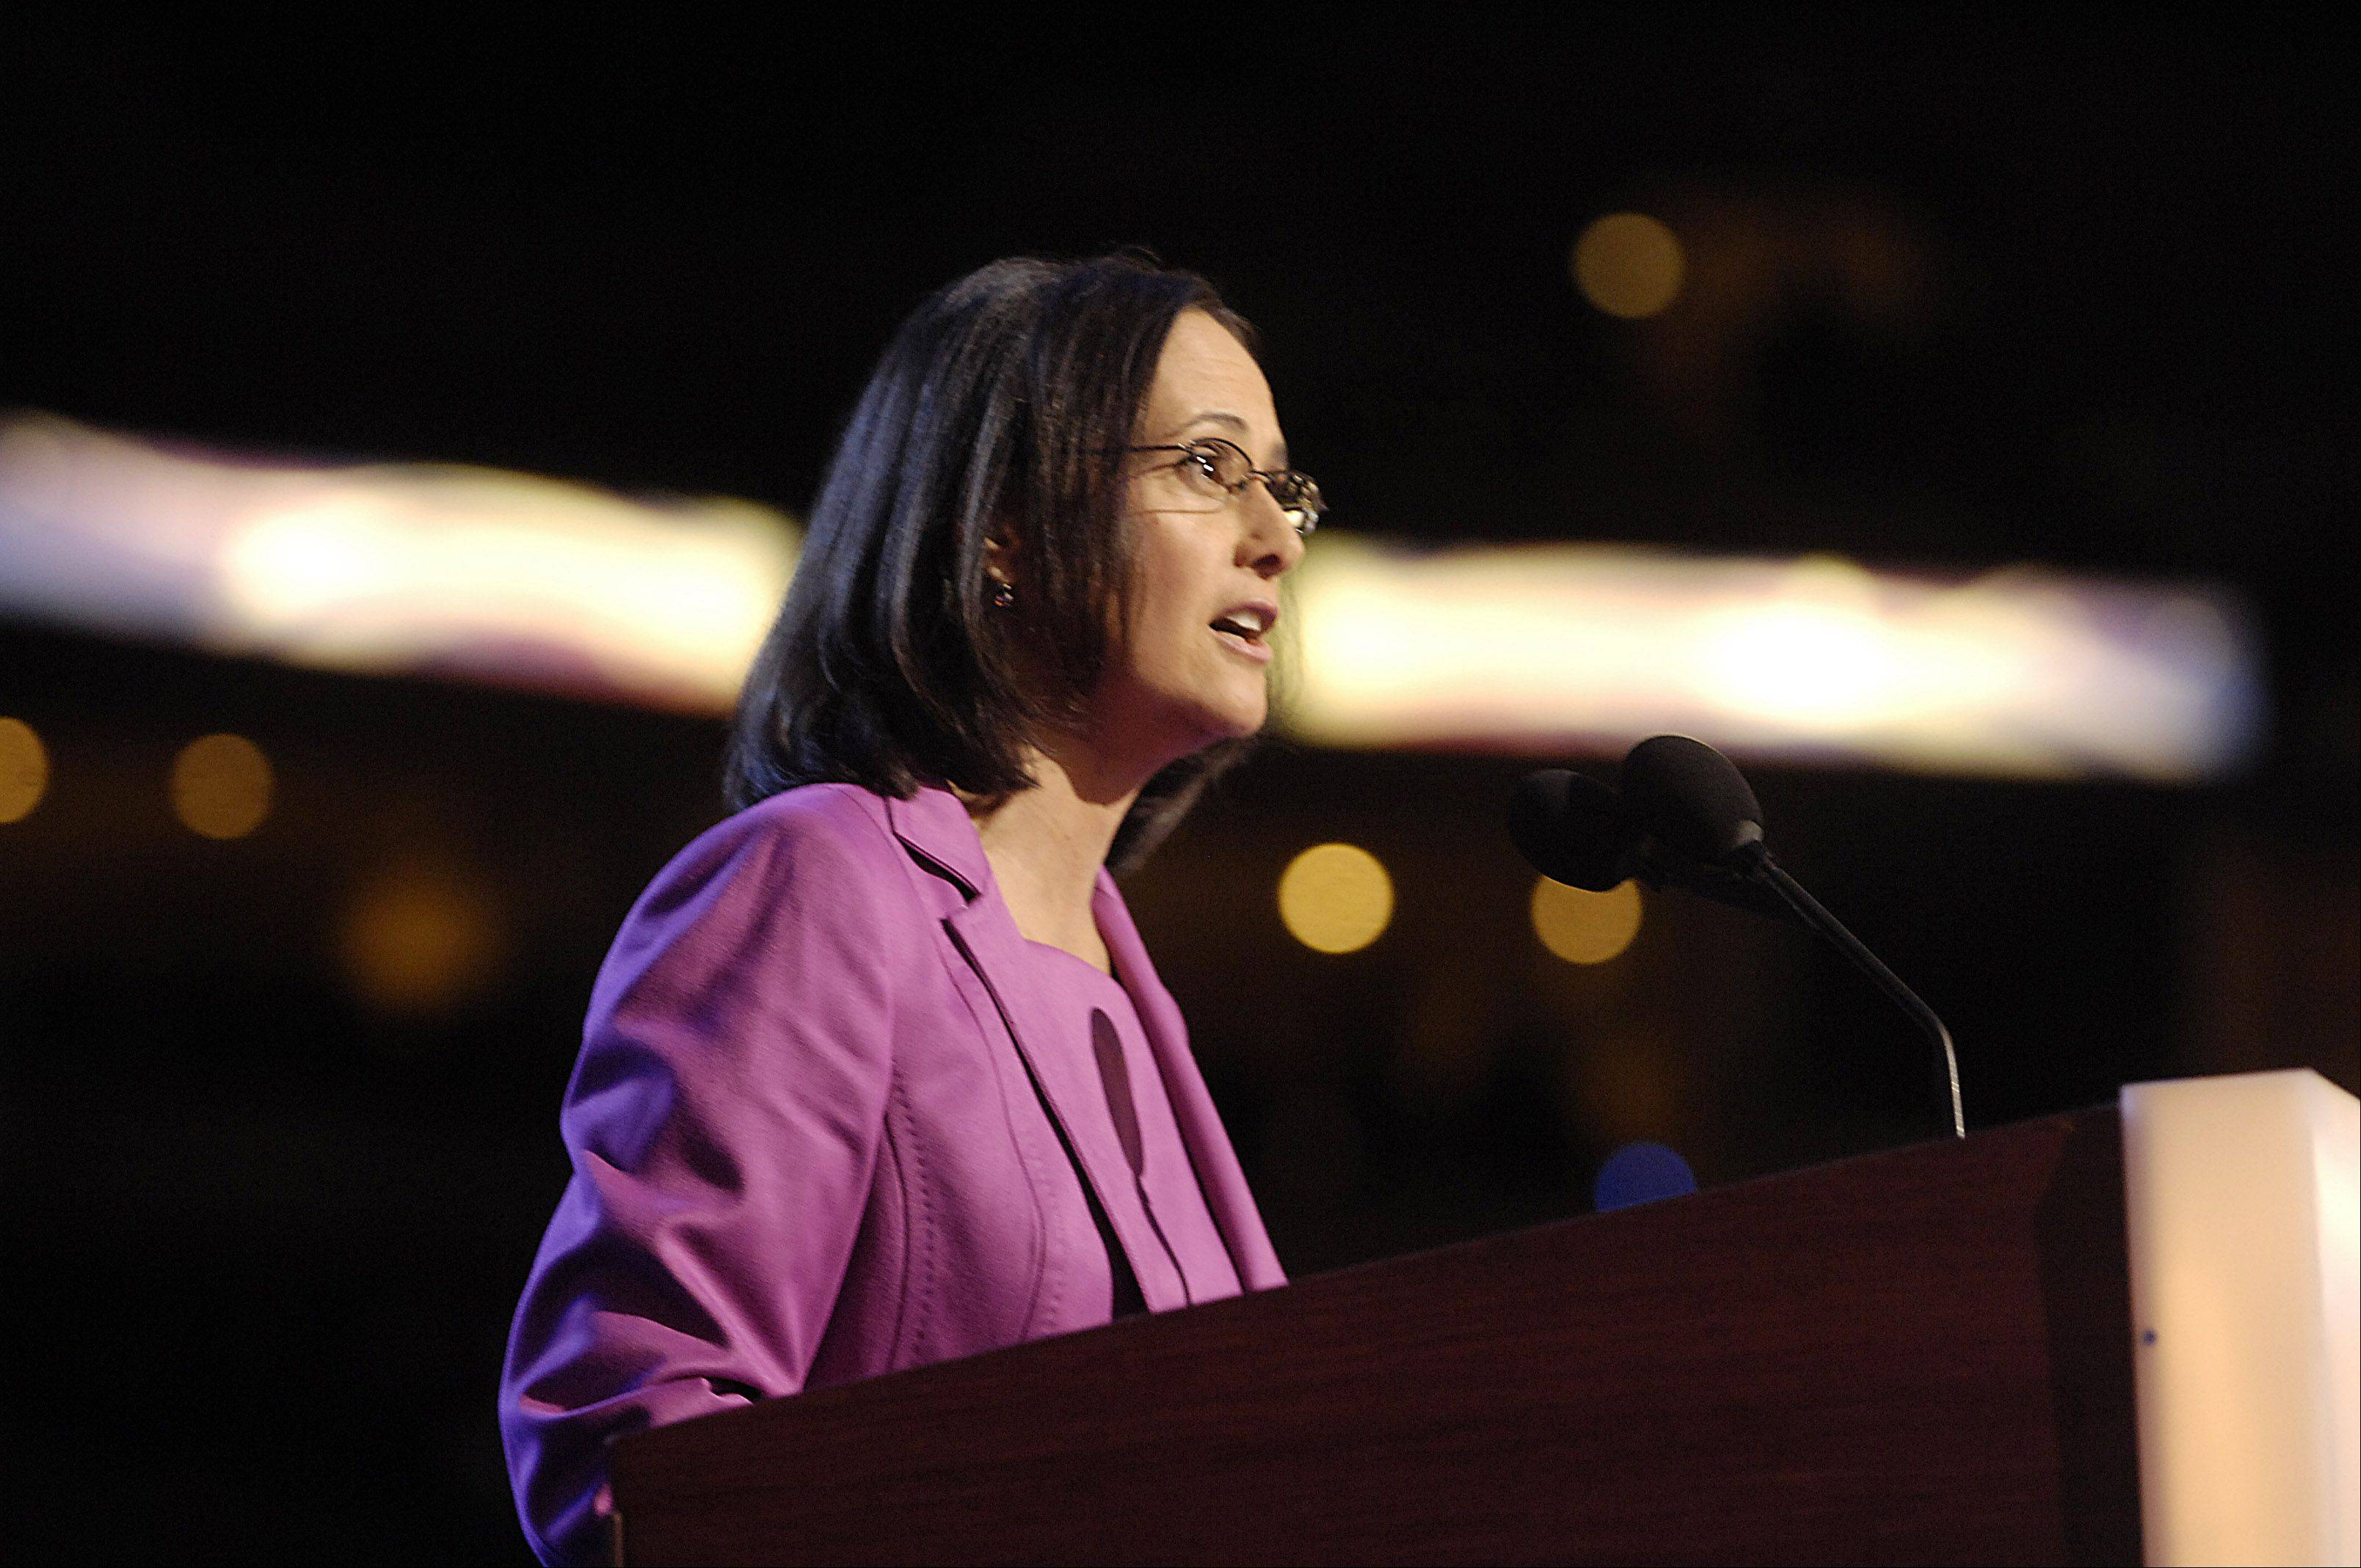 Democratic Illinois Attorney General Lisa Madigan is also considering a run for governor in 2014.